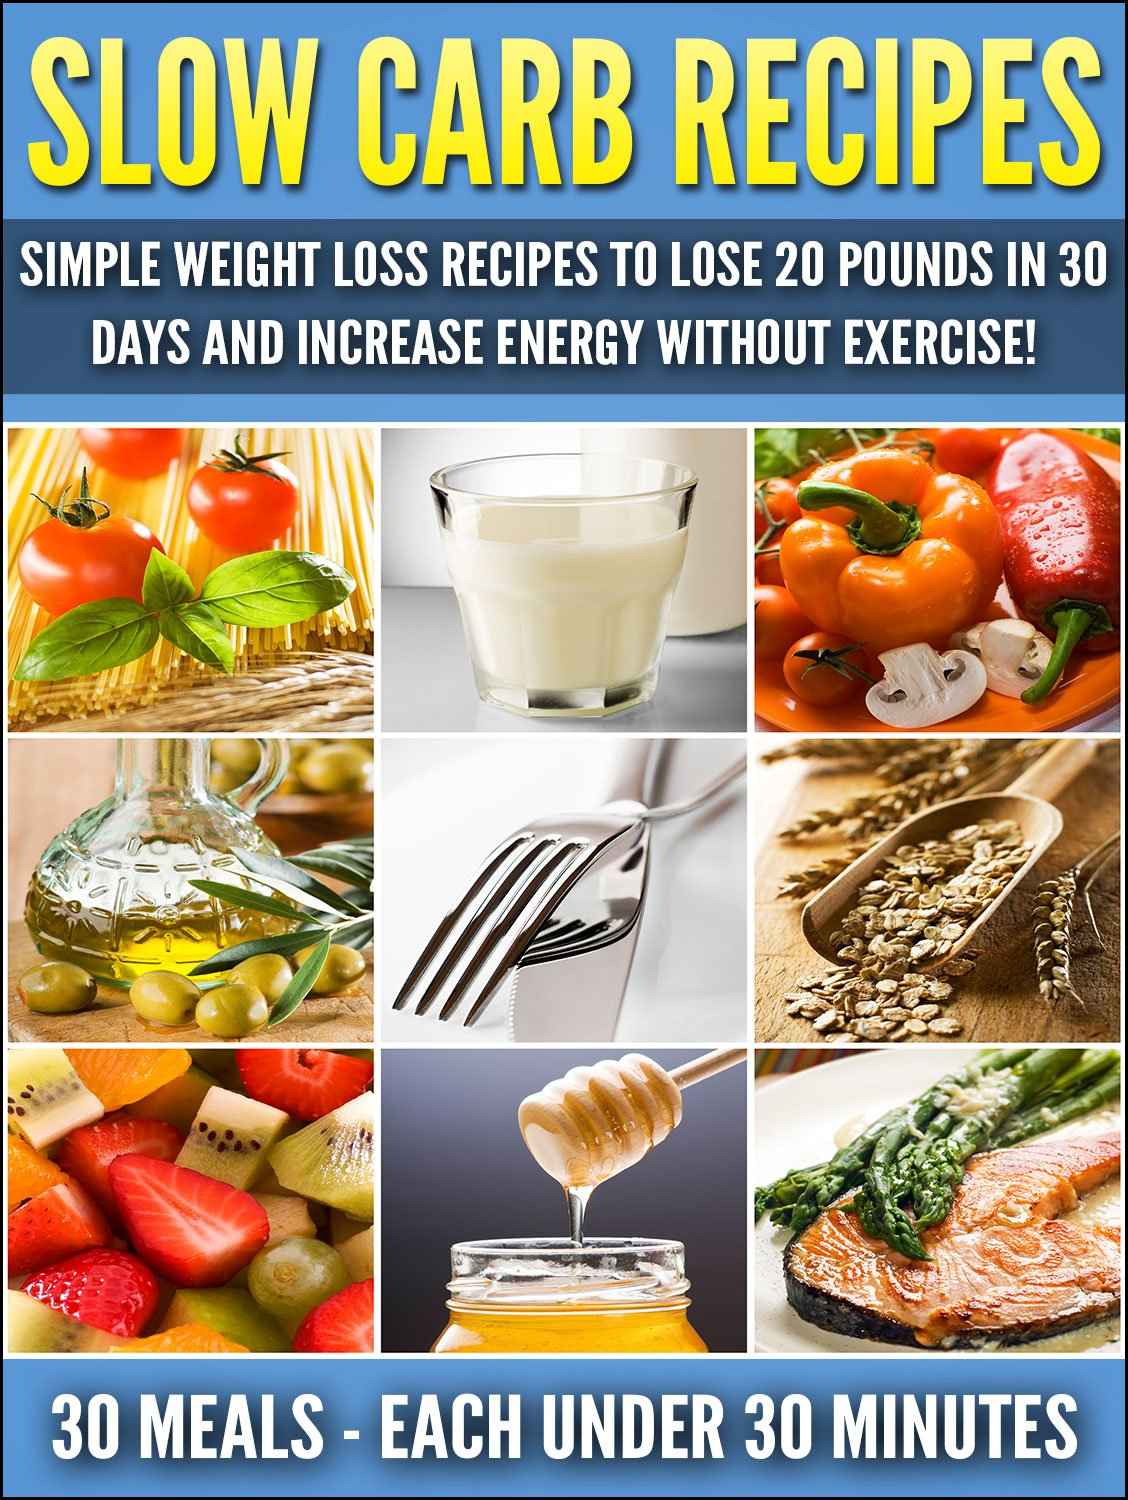 Slow Carb Recipes: Simple Weight Loss Recipes To Lose 20 Pounds in 30 Days and Increase Energy Without Exercise! by Ashir Nelson